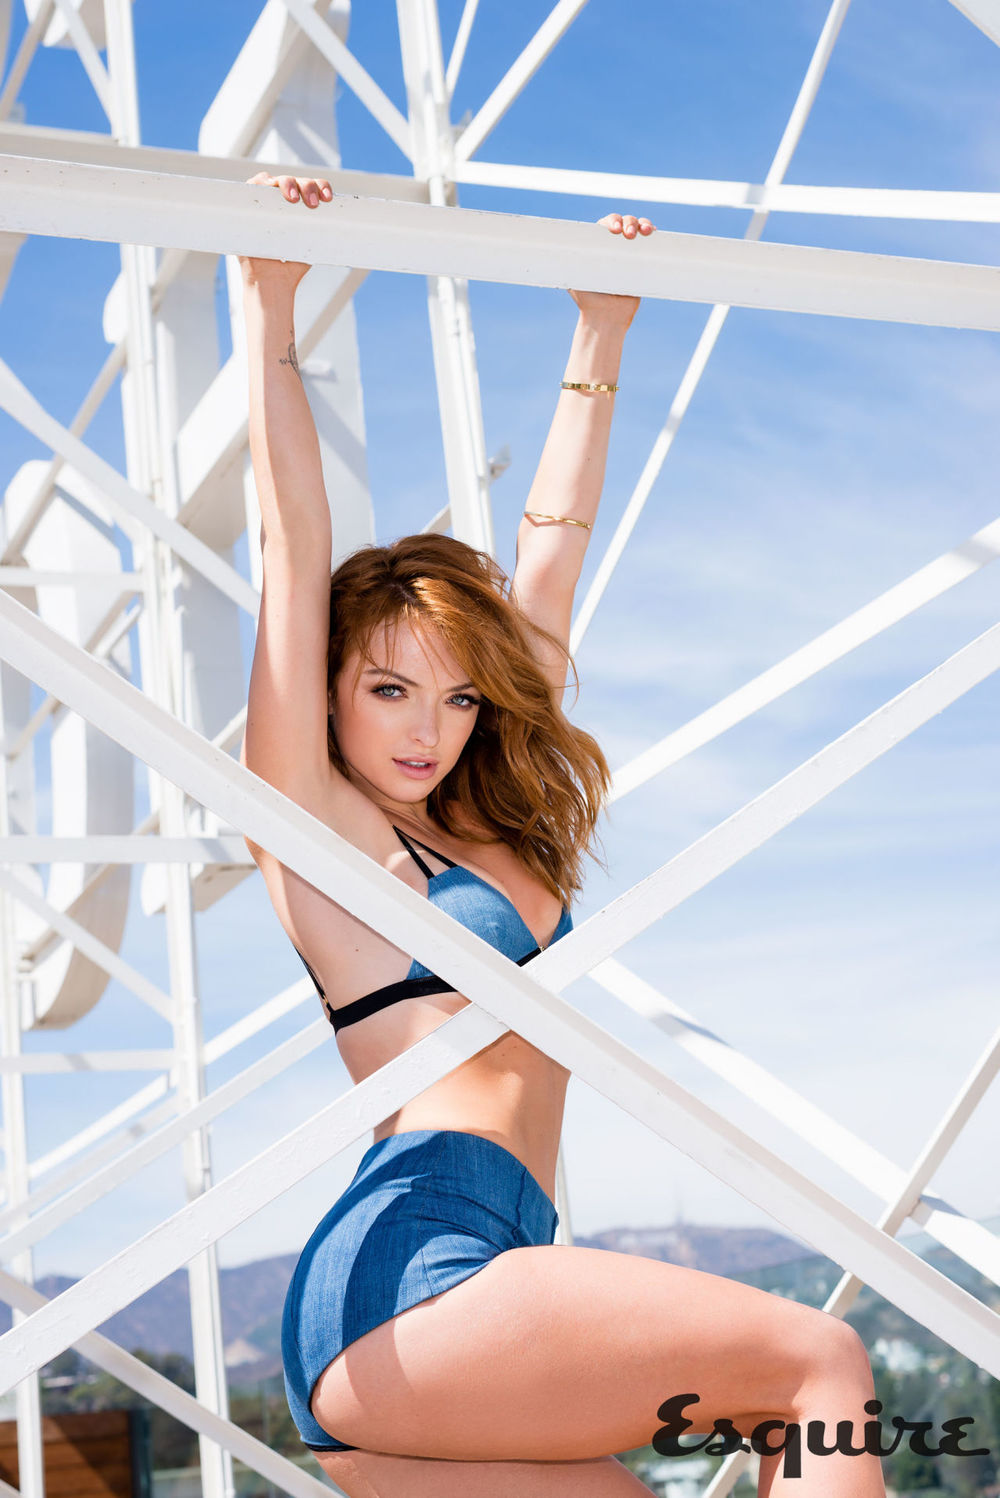 Esquire Magazine interview with Francesca Eastwood